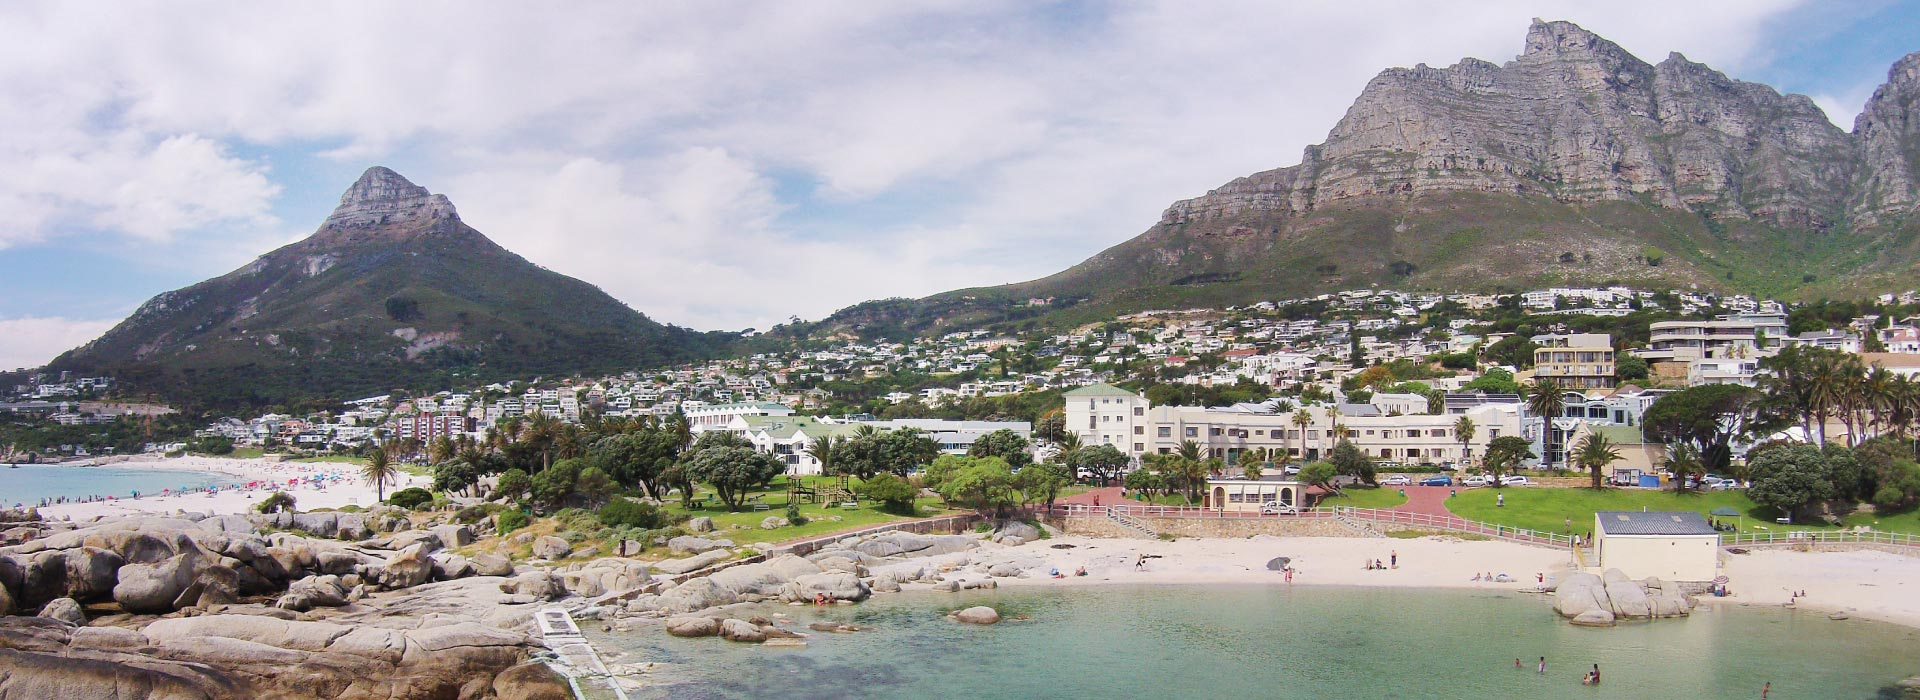 Camps Bay Village - Beach View